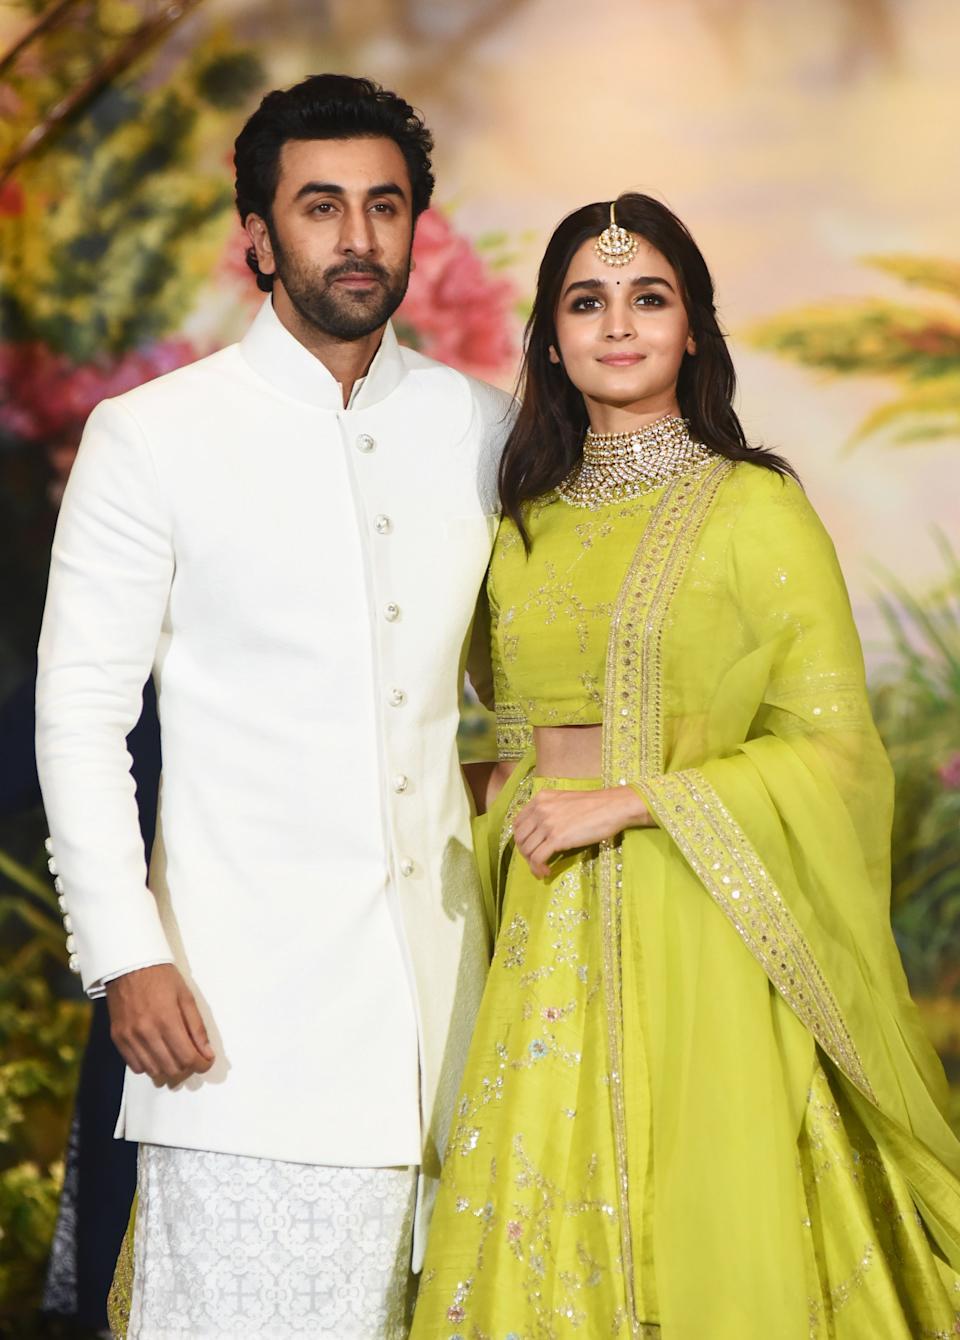 Indian Bollywood actors Ranbir Kapoor (L) and Alia Bhatt pose for a picture during the wedding reception of actress Sonam Kapoor and businessman Anand Ahuja in Mumbai late on May 8, 2018. (Photo by Sujit Jaiswal / AFP)        (Photo credit should read SUJIT JAISWAL/AFP via Getty Images)